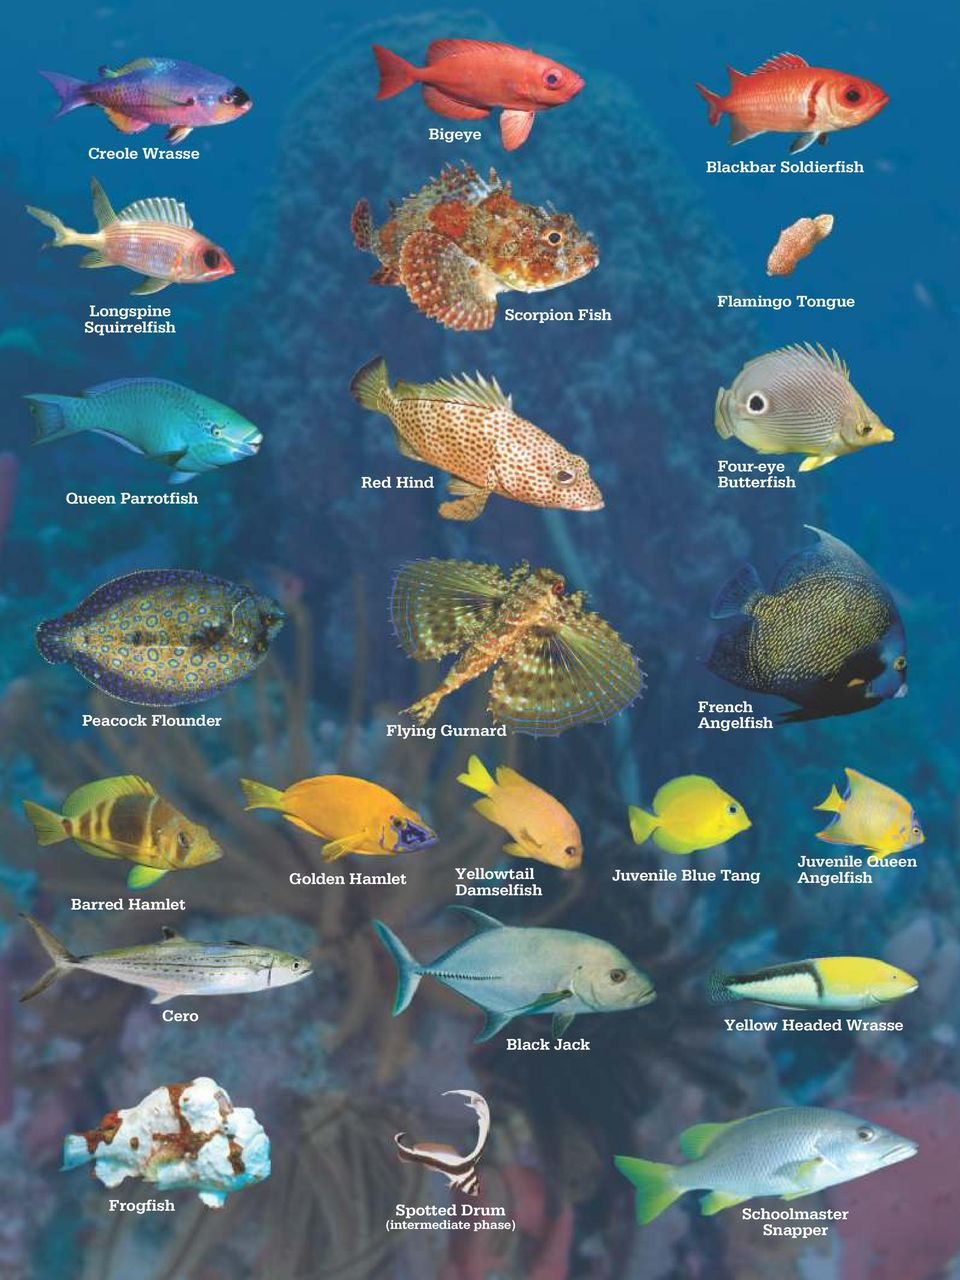 Barred Hamlet Golden Hamlet Yellowtail Damselfish Juvenile Blue Tang Juvenile Queen Angelfish